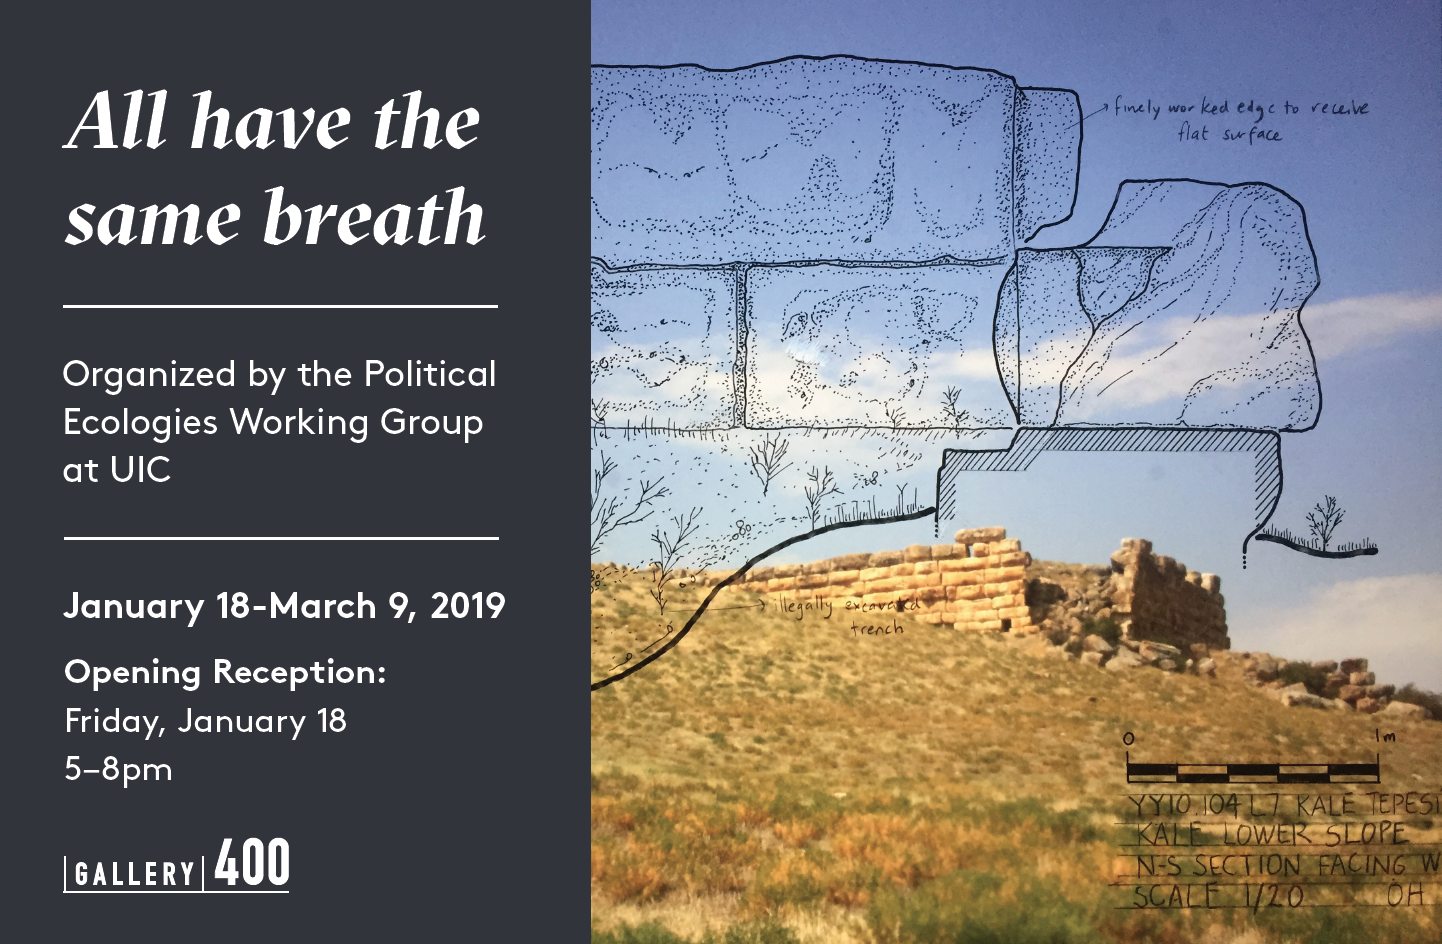 January 18 - March 9, 2019 /  All have the same breath  / Gallery 400